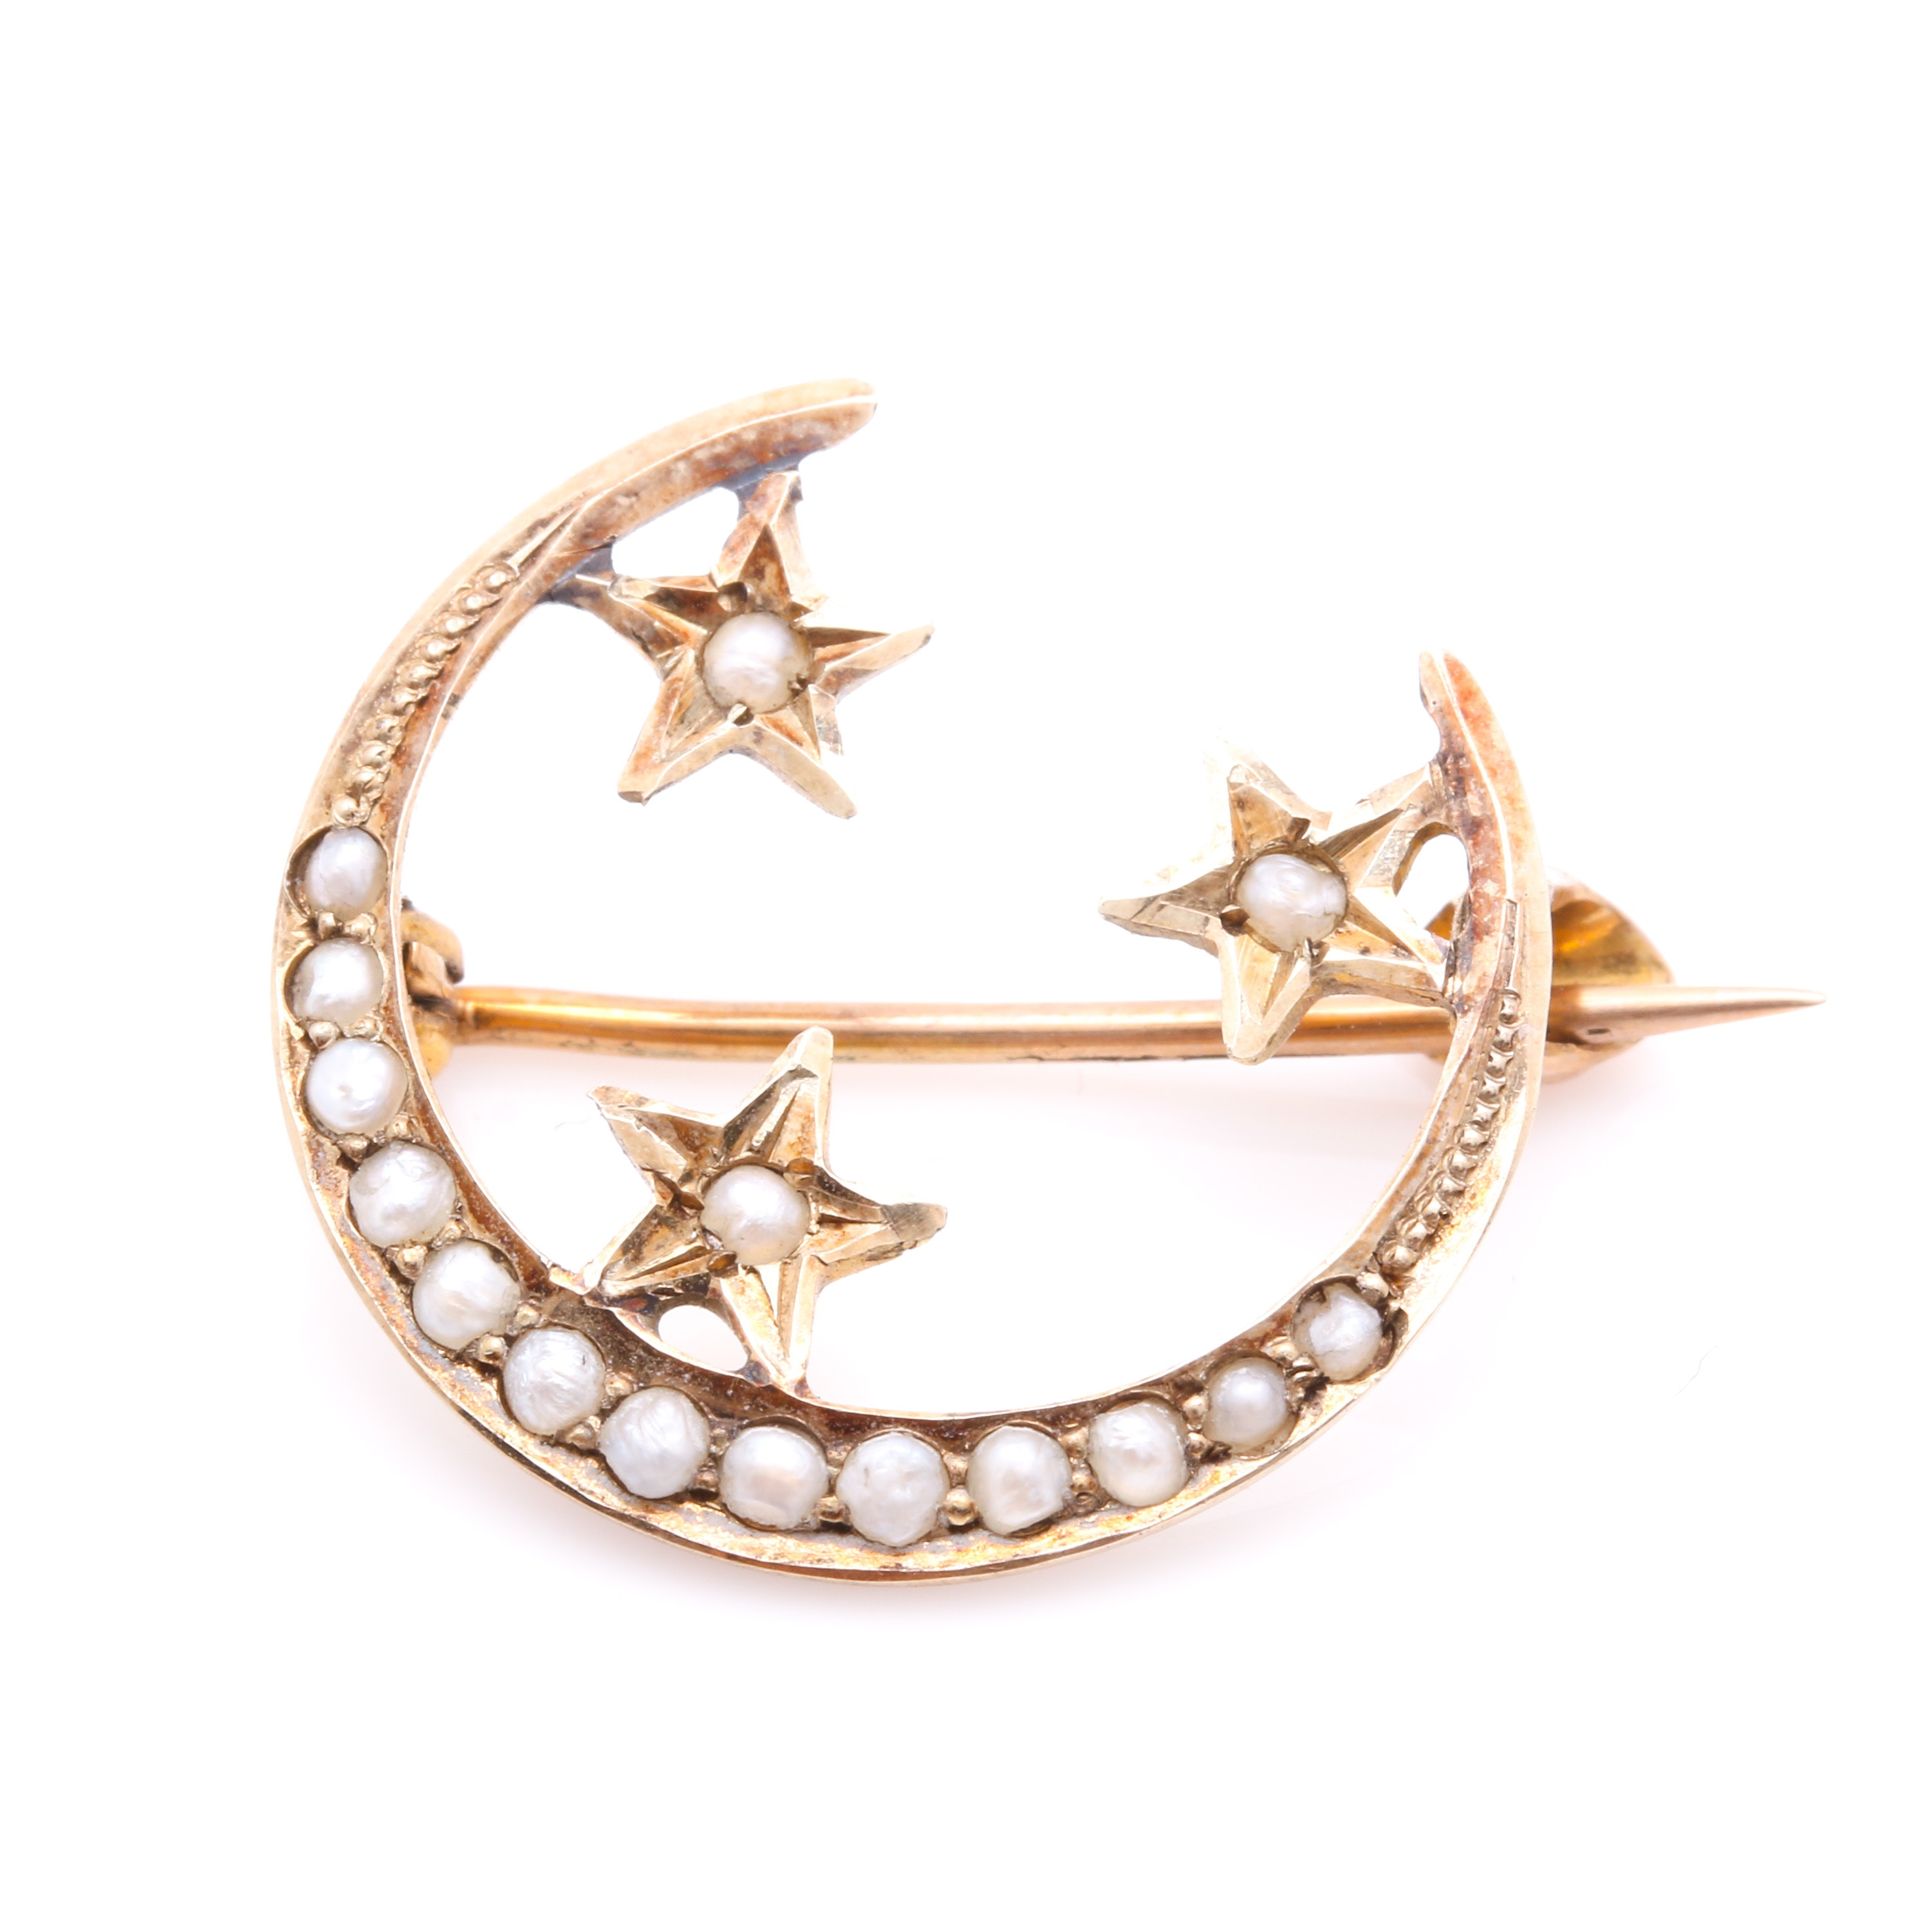 10K Yellow Gold Seed Pearl Crescent Moon Brooch